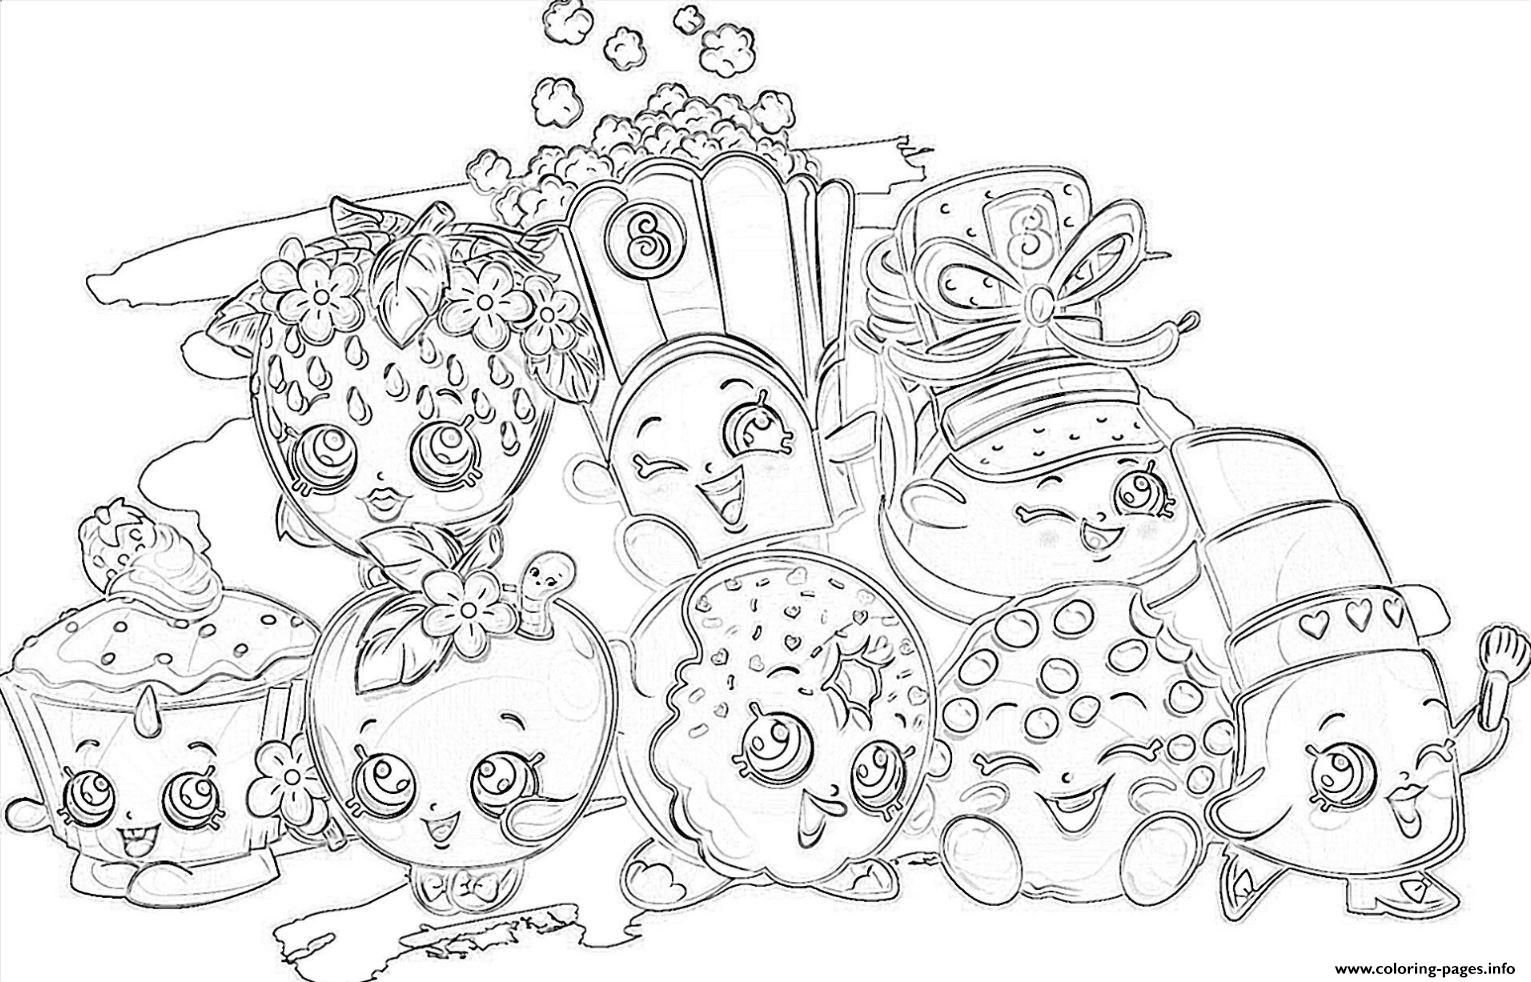 Print Shopkins All The Family Coloring Pages